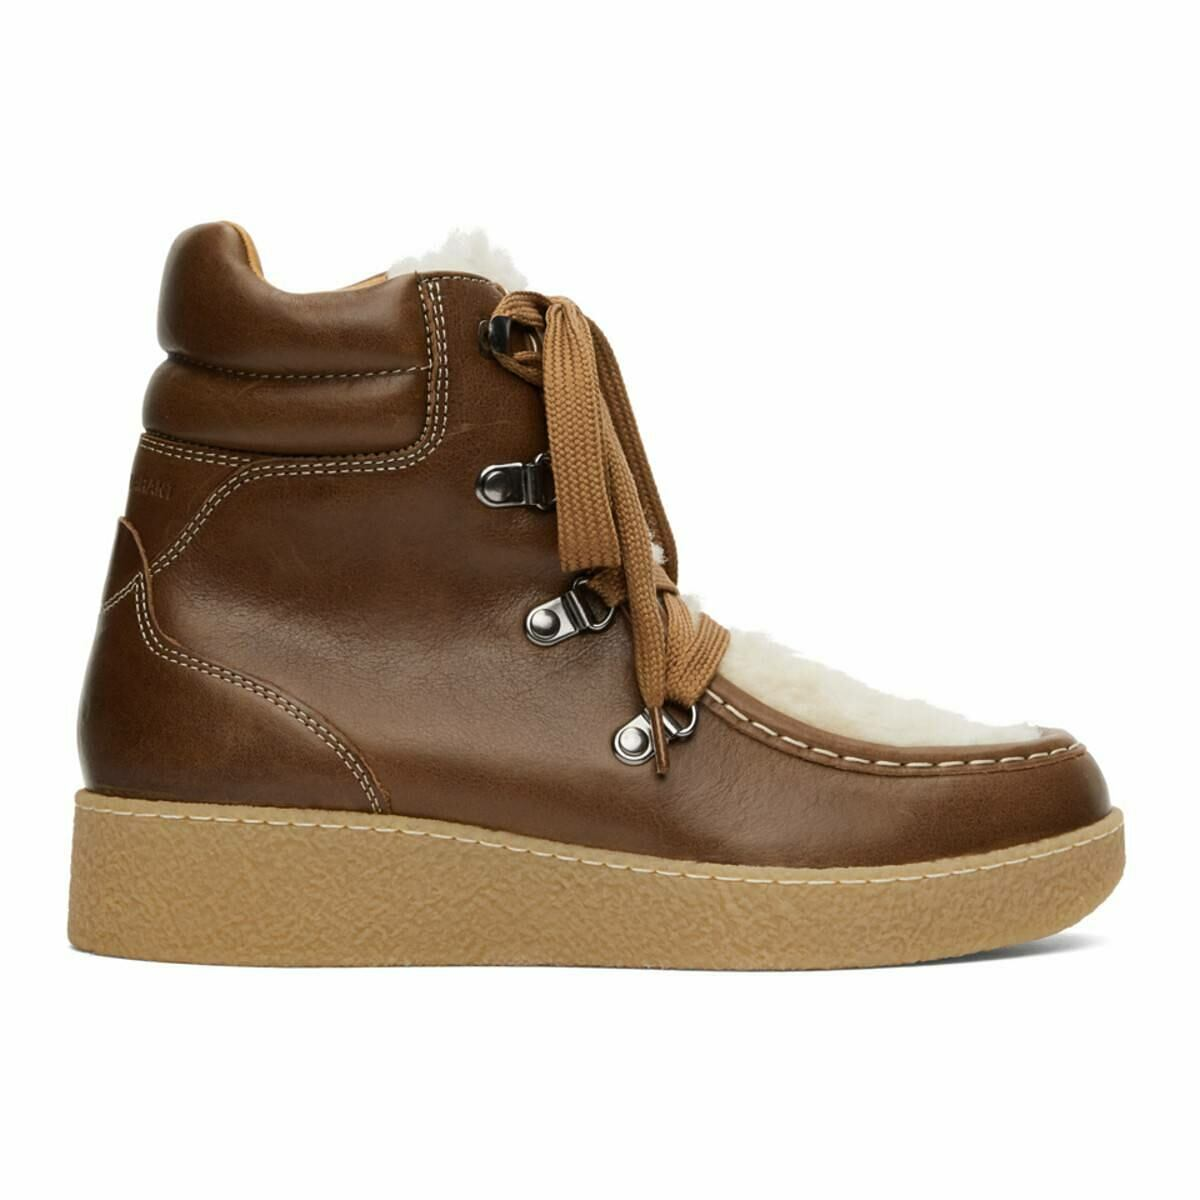 Isabel Marant Brown Shearling Alpica Ankle Boots Ssense USA WOMEN Women SHOES Womens ANKLE BOOTS